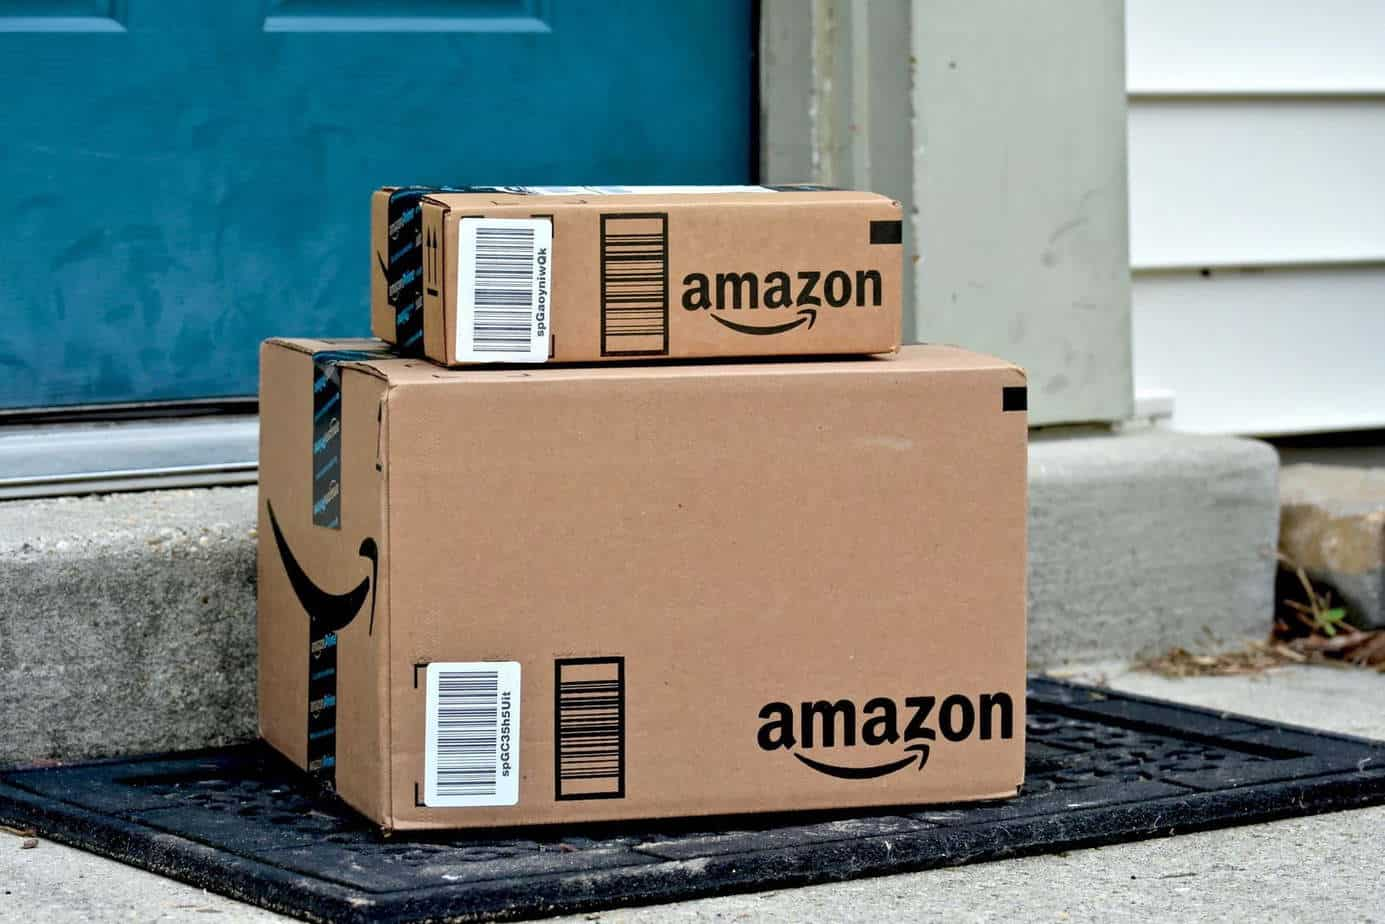 How to reuse Amazon boxes